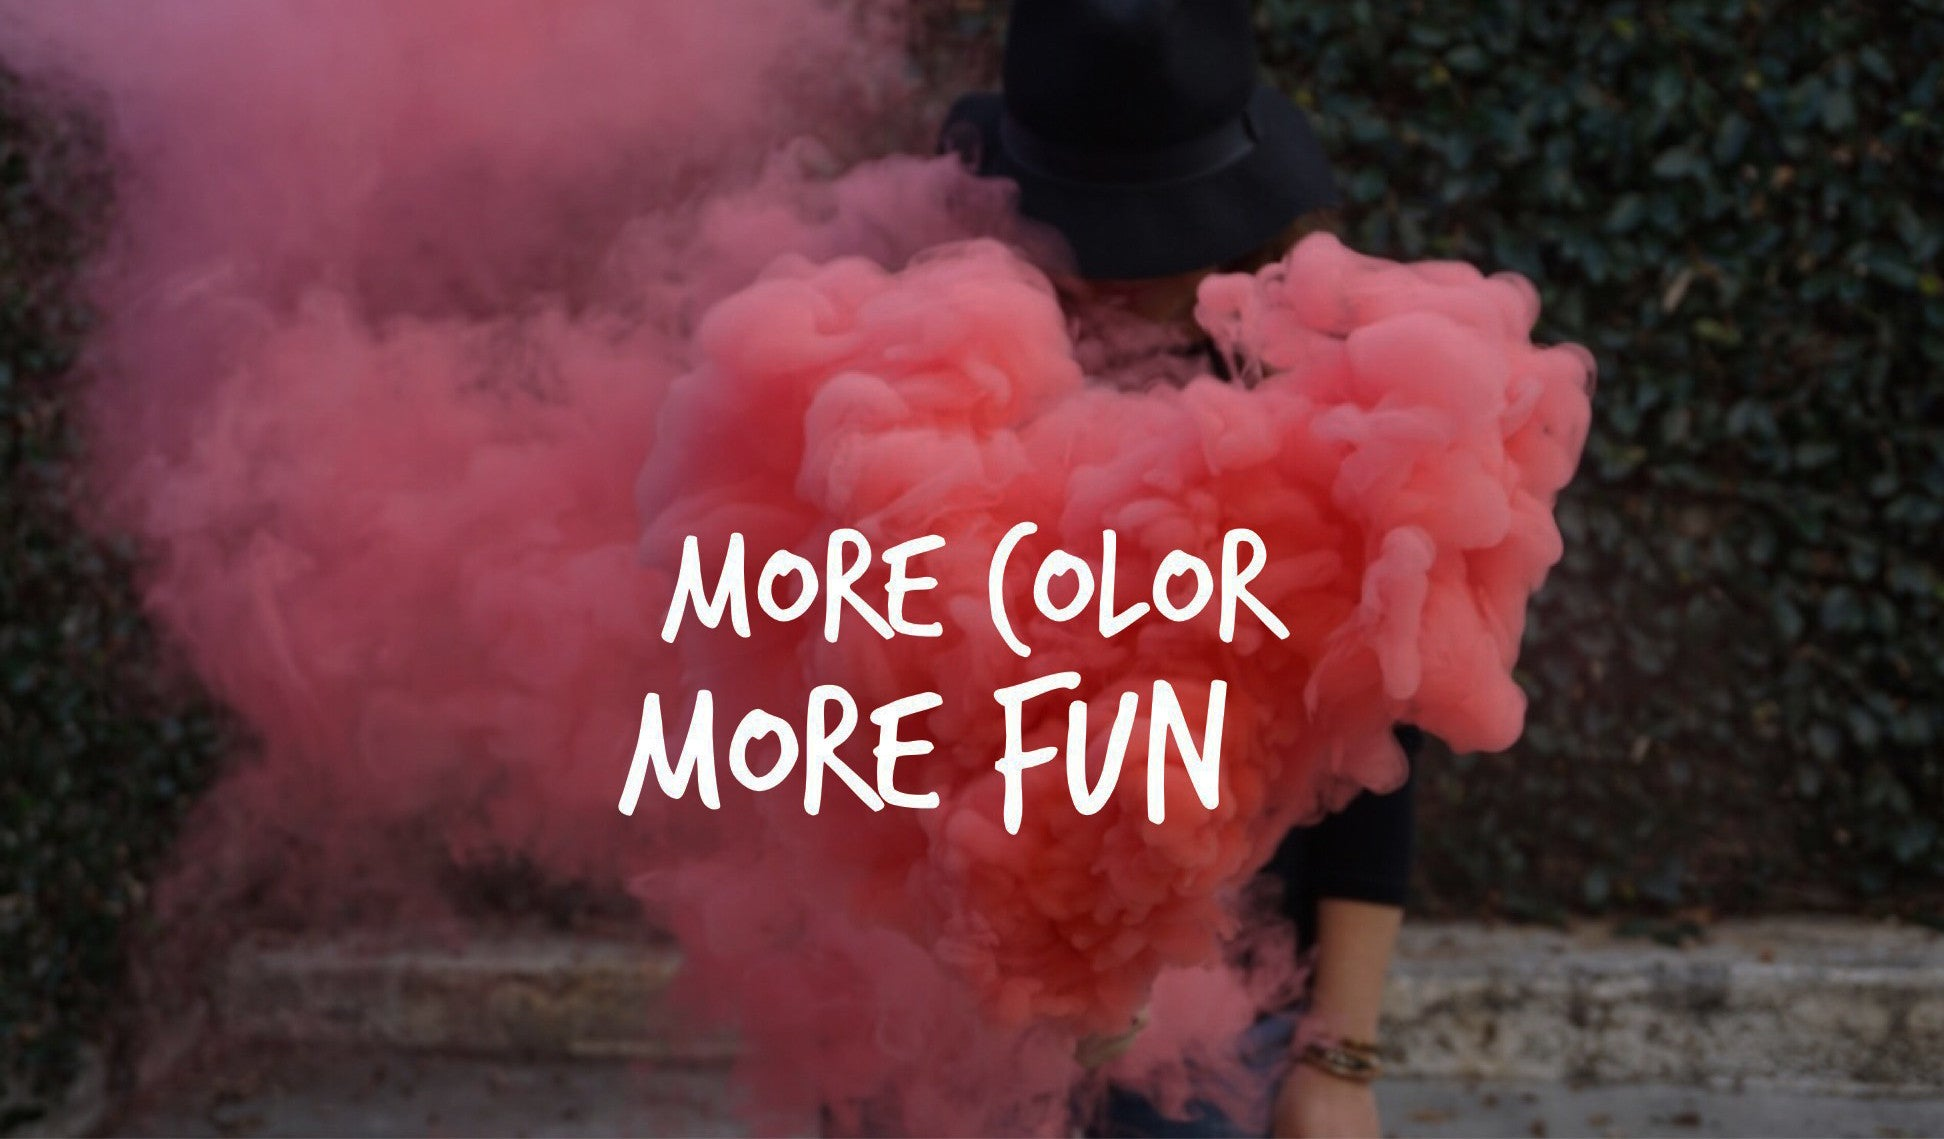 More Color, More Fun - New Smoke Bombs Available!